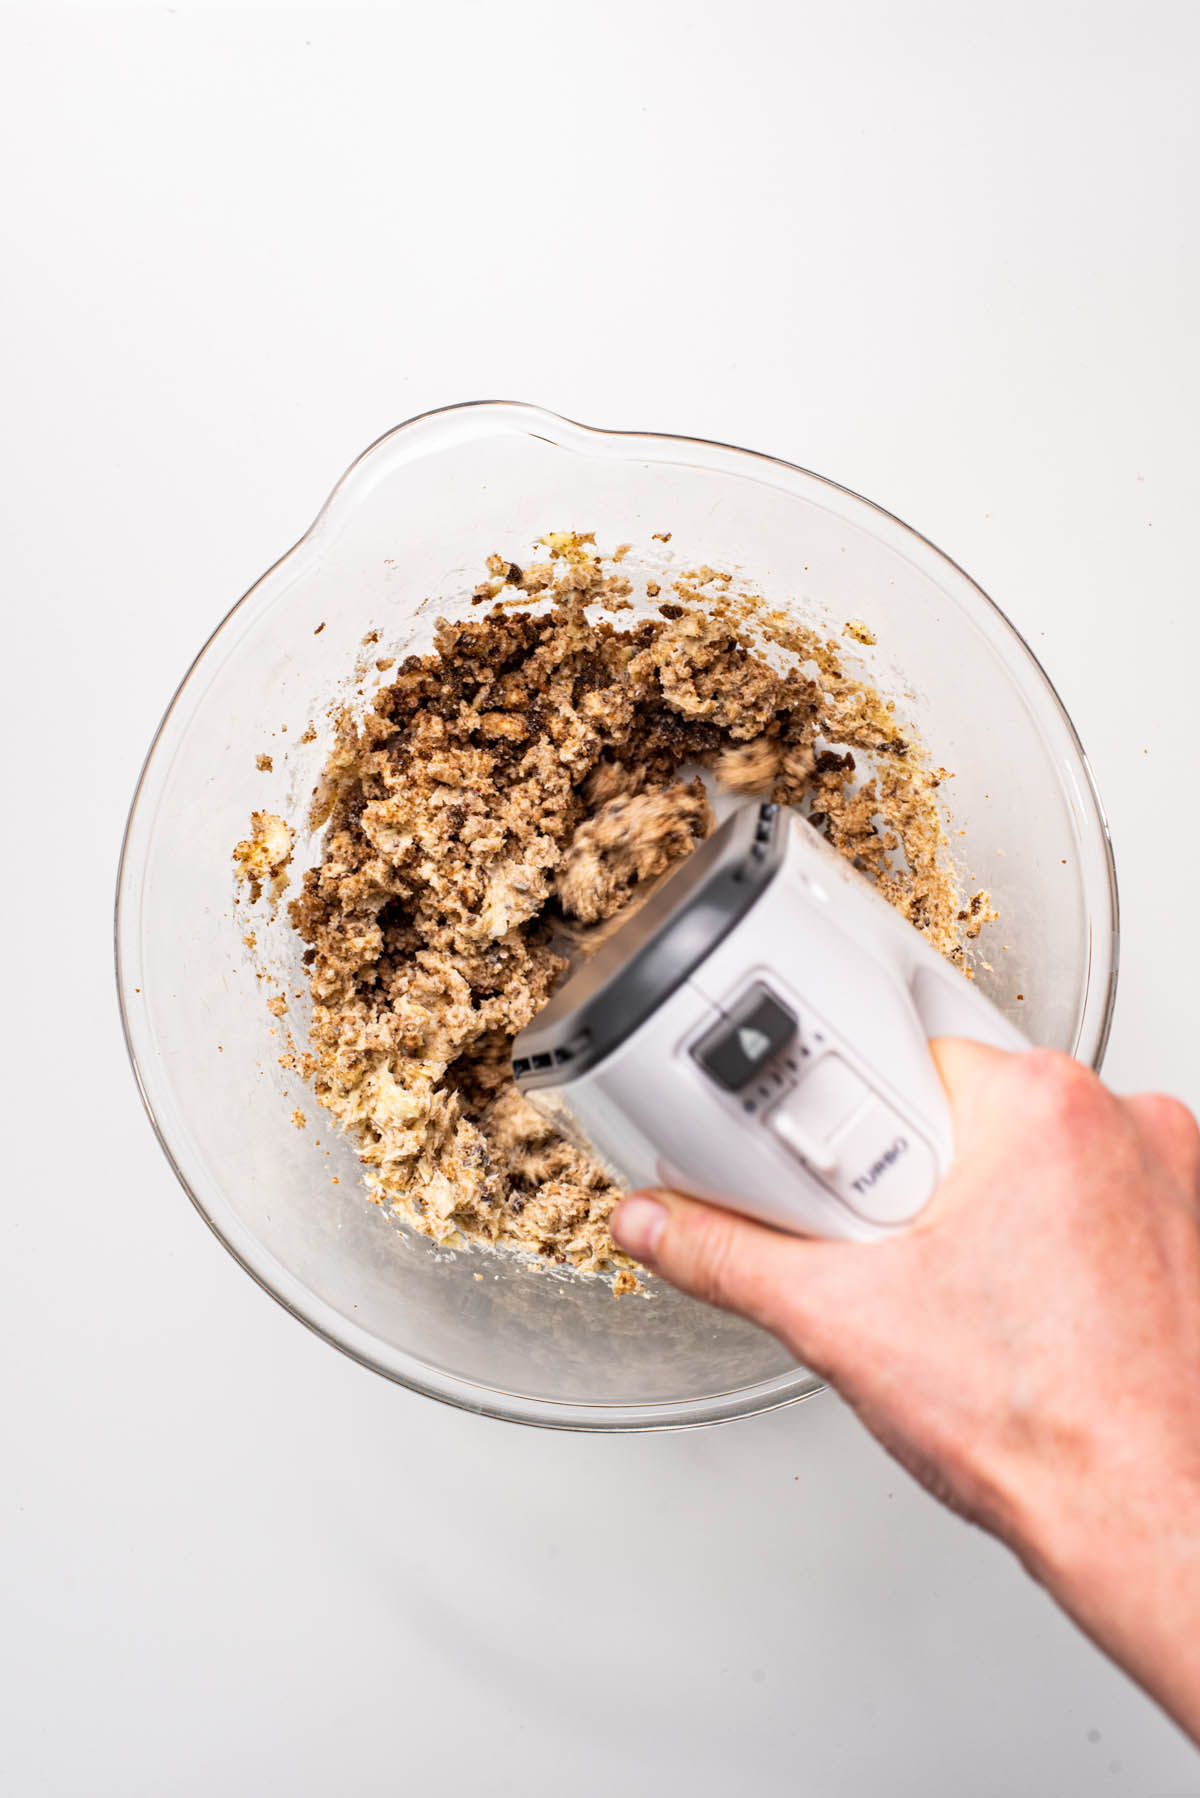 Mixing sugars and butter with an electric hand mixer.